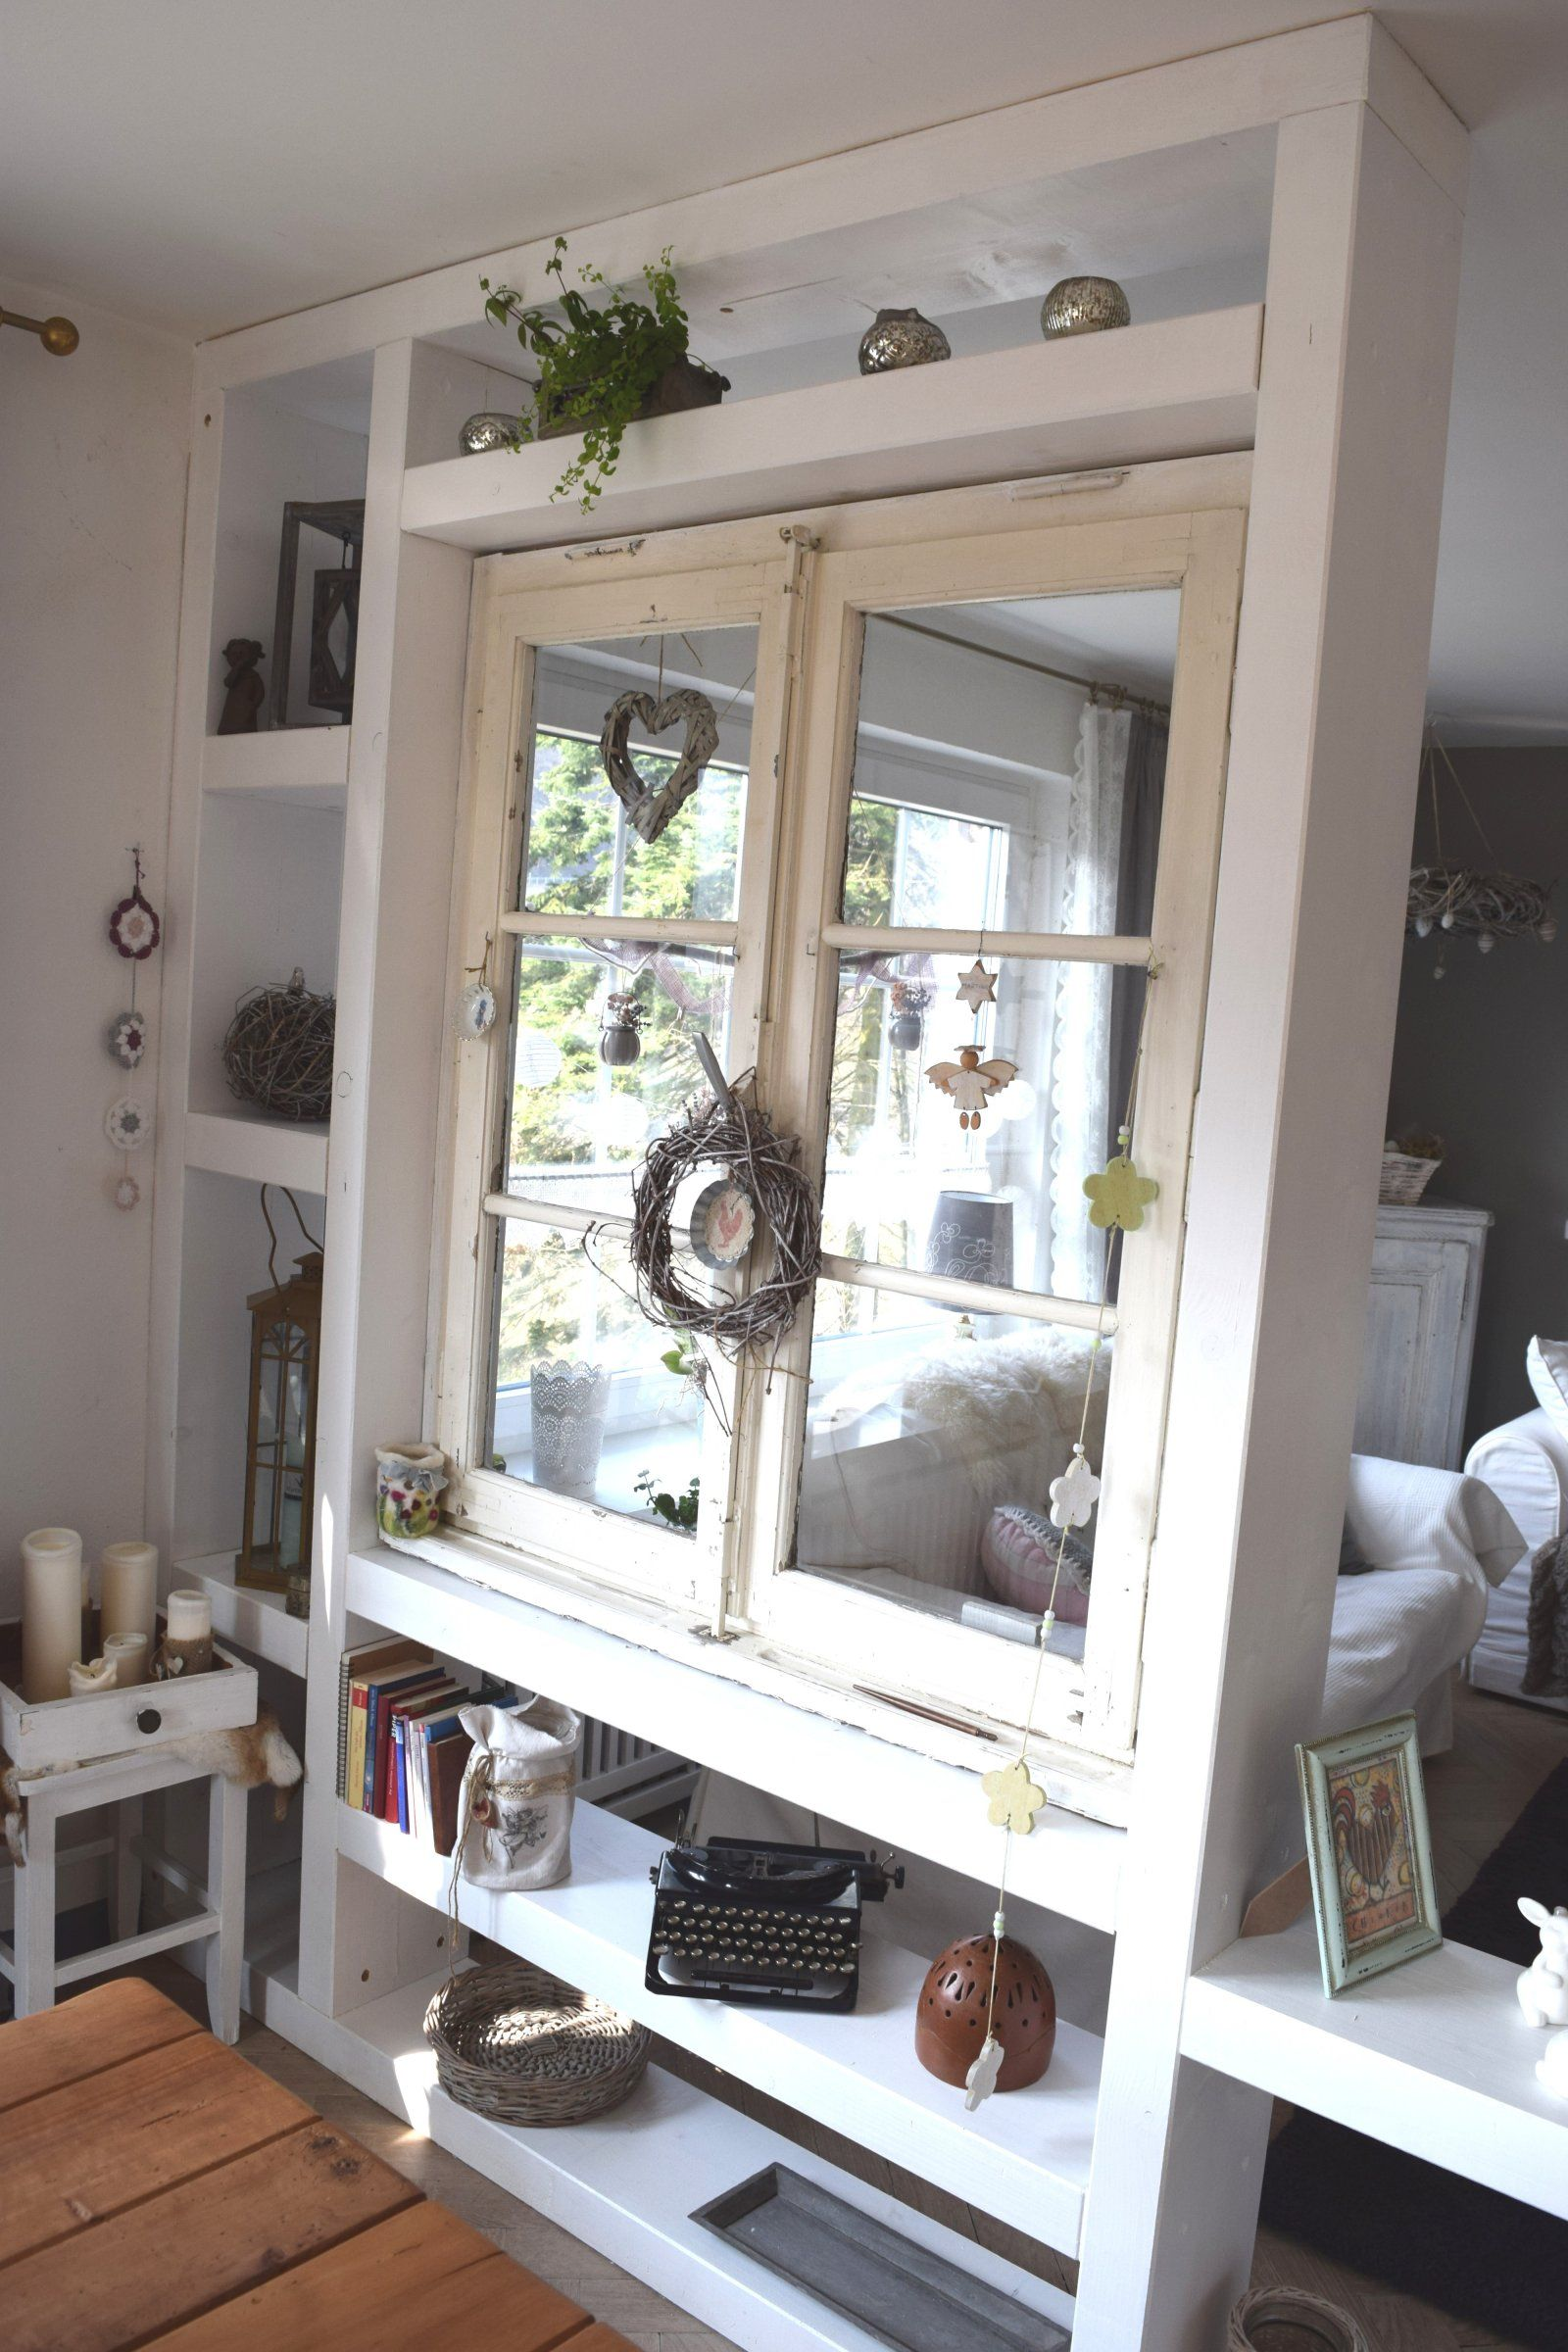 Holzvertäfelung Shabby Raumteiler Mit Altem Fenster Organizing Ideas House Design